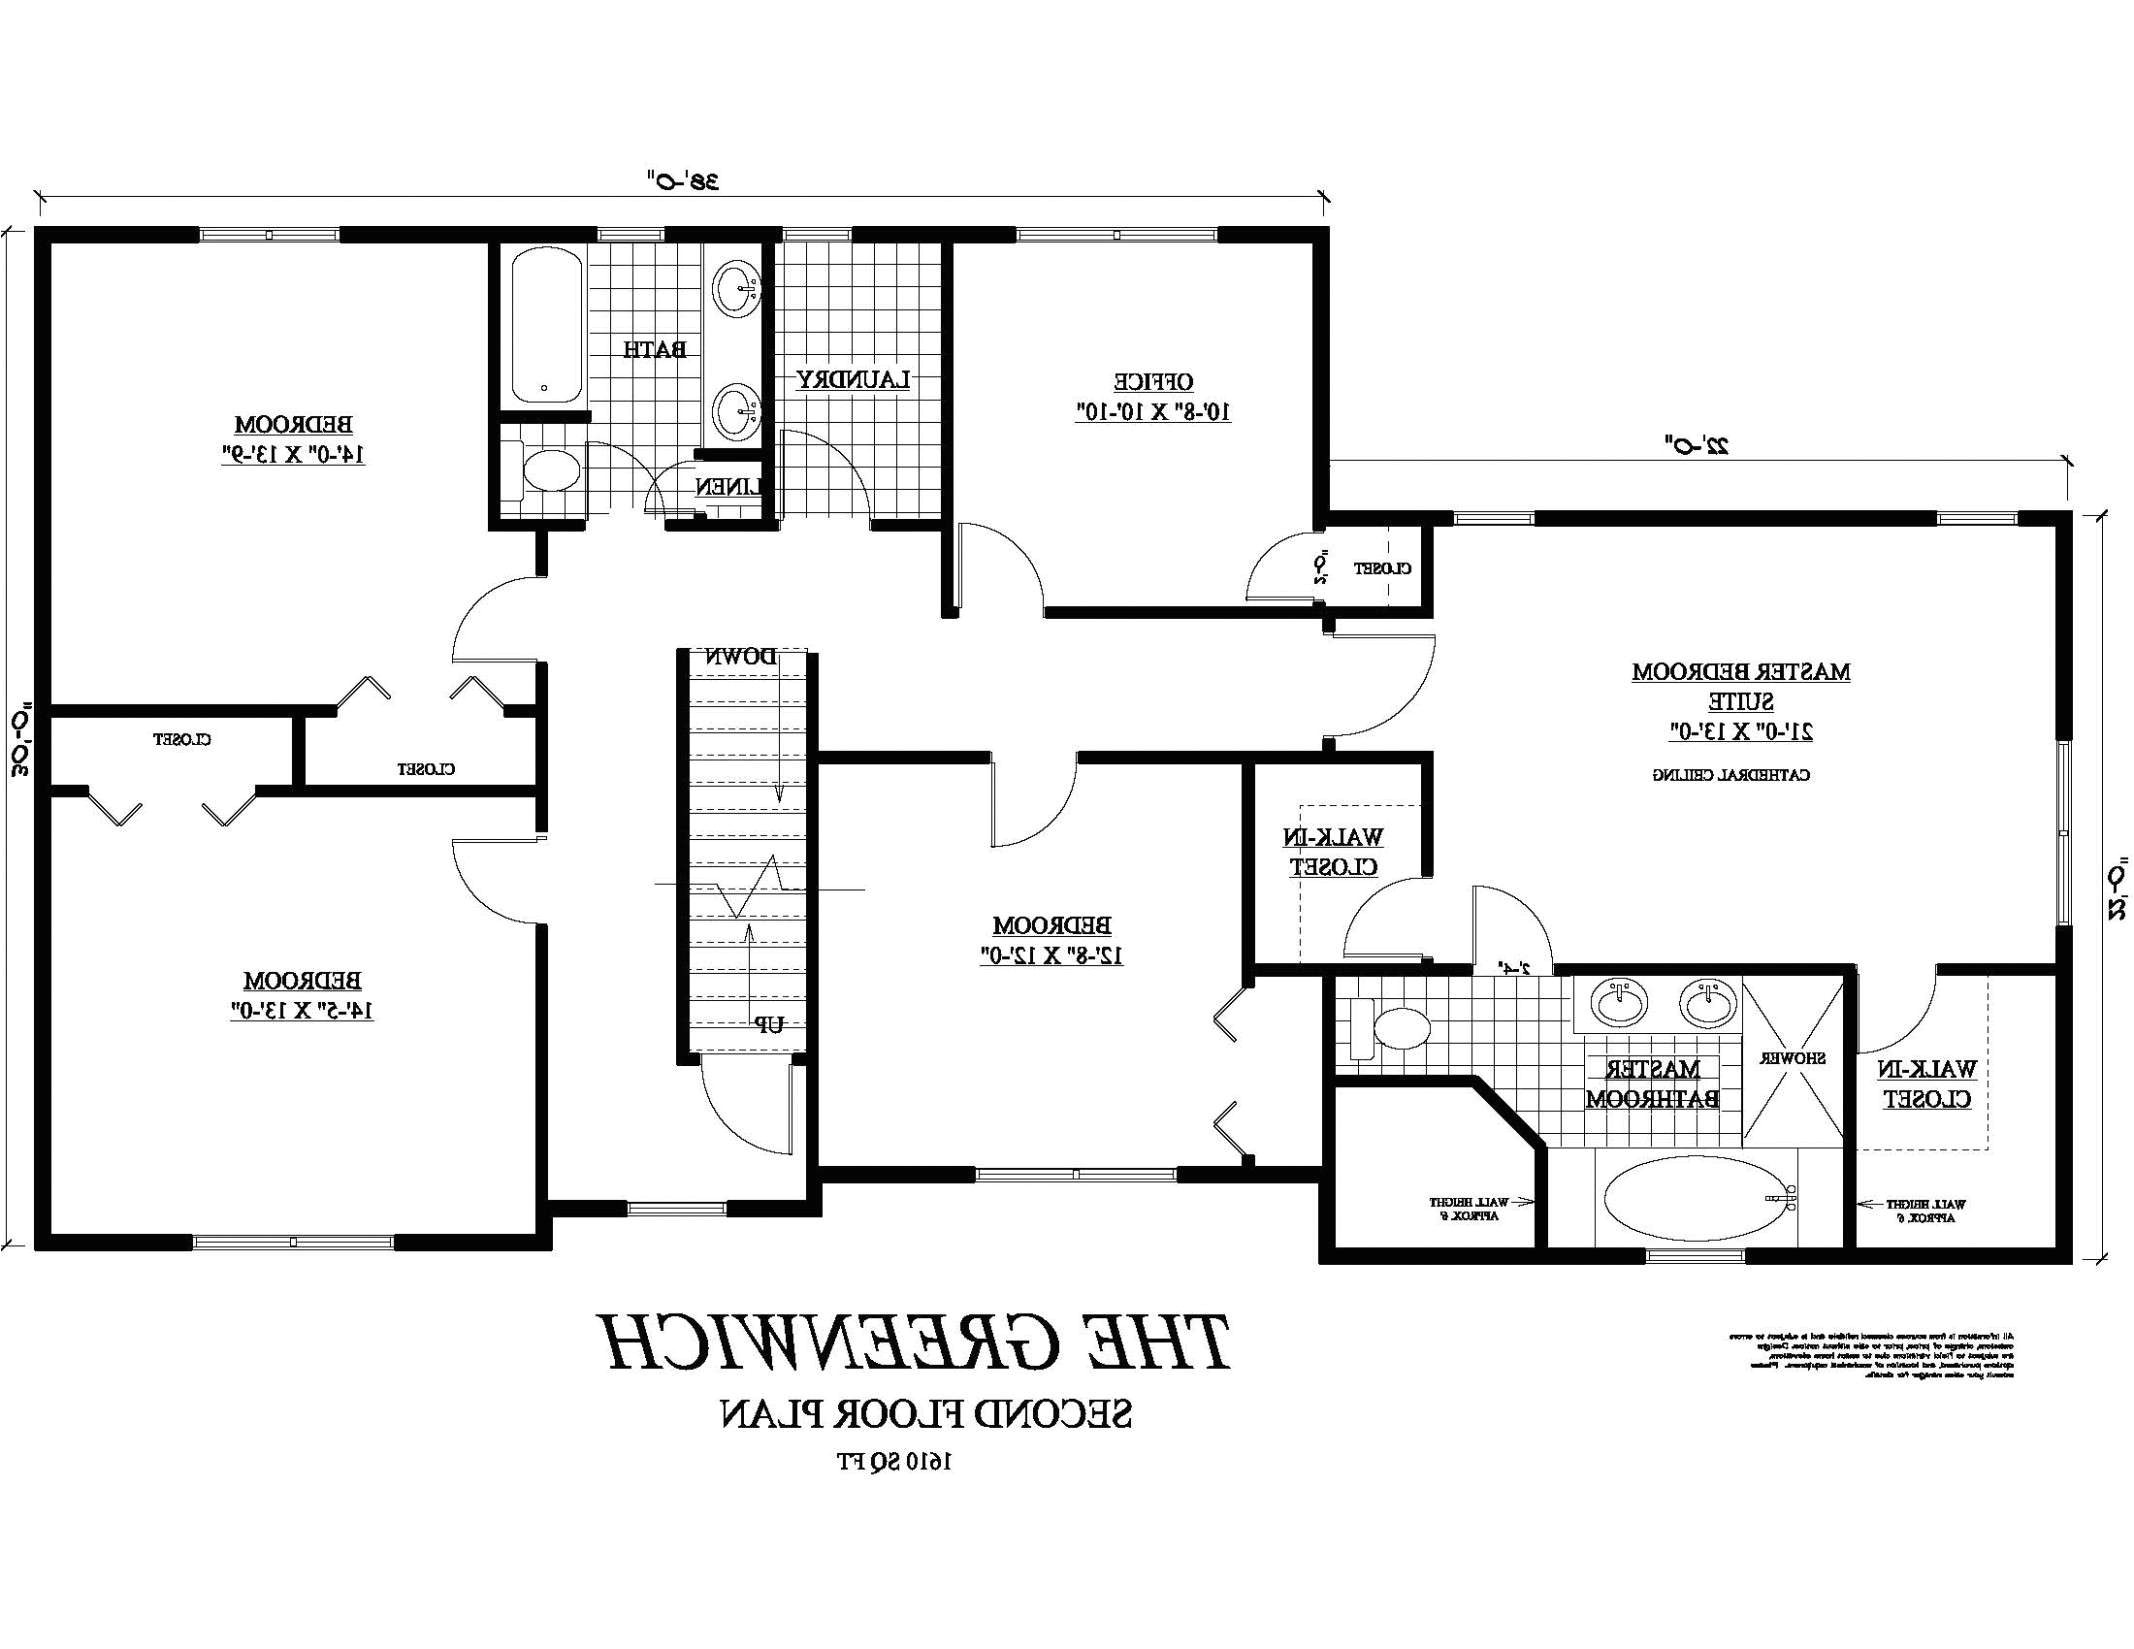 plans for my house uk